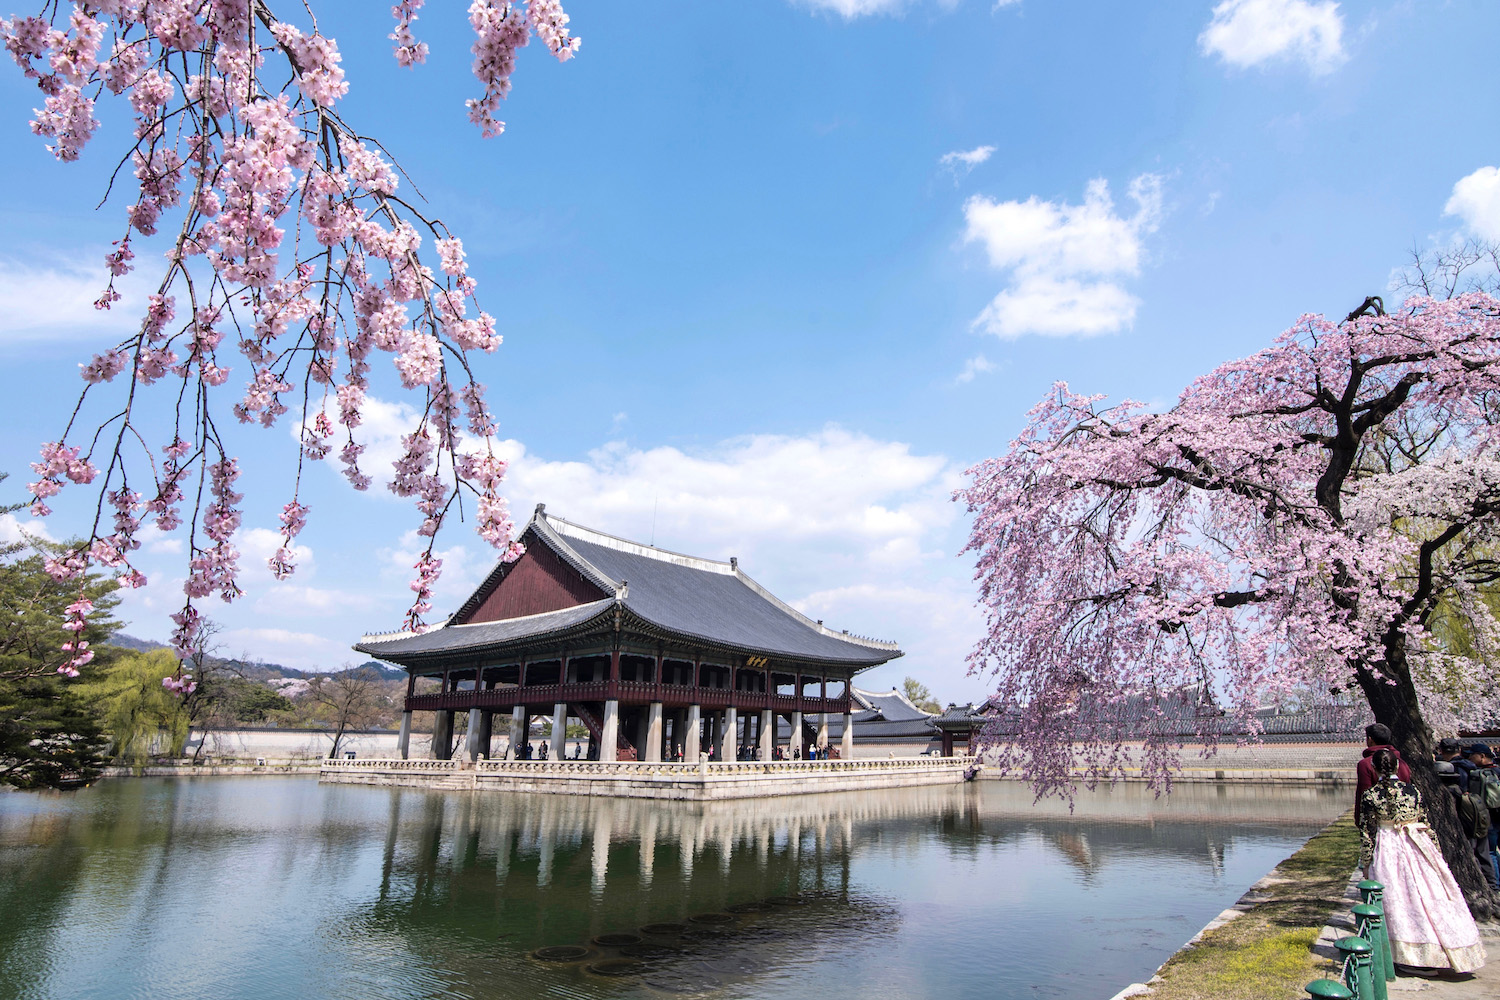 When Will Korea Open for Tourism?